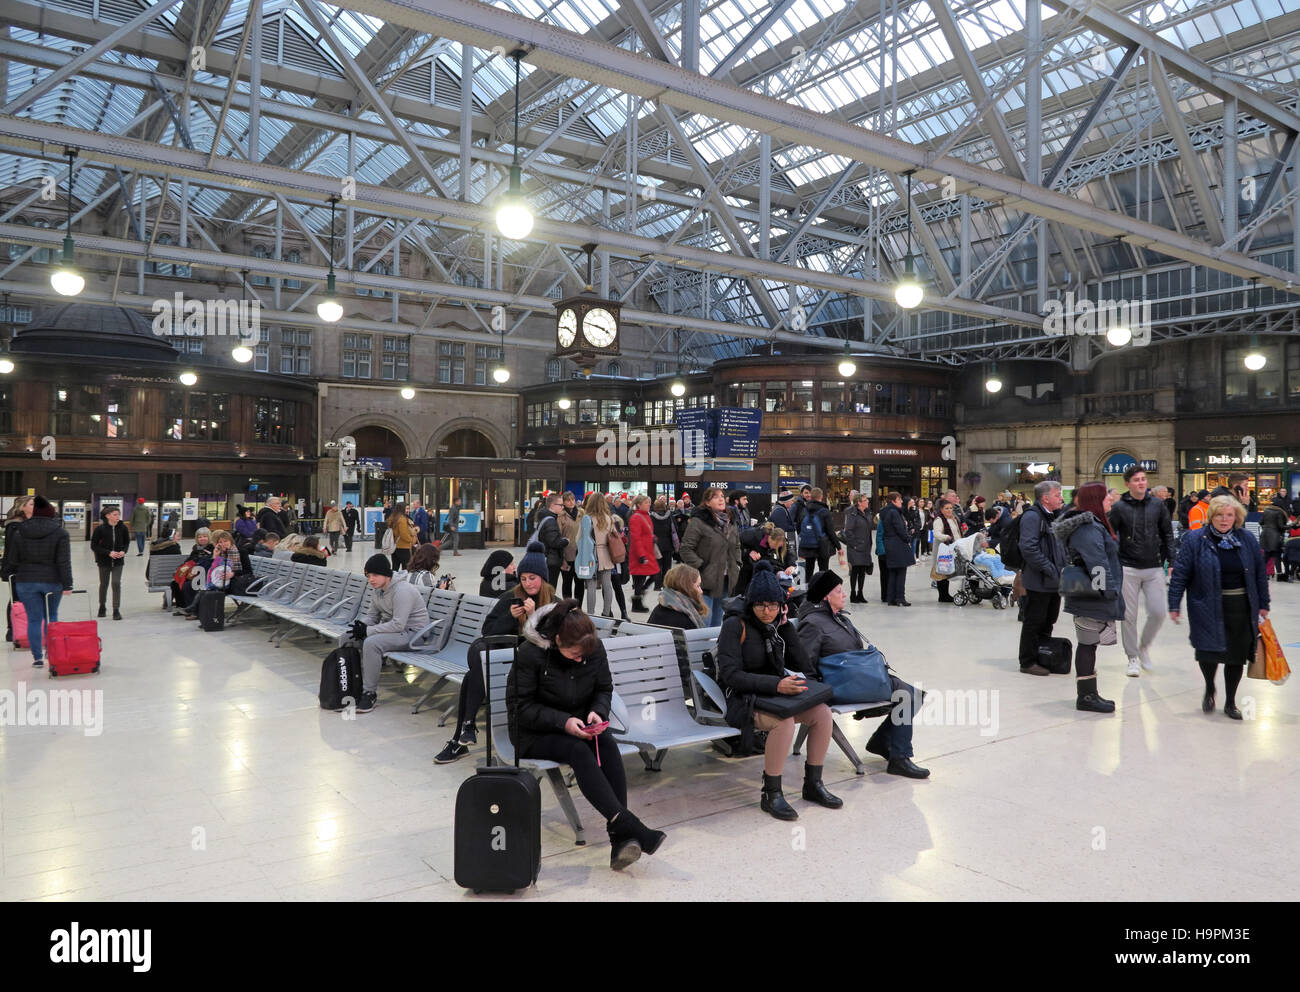 Glasgow Central Station - Passengers waiting on concourse - Stock Image